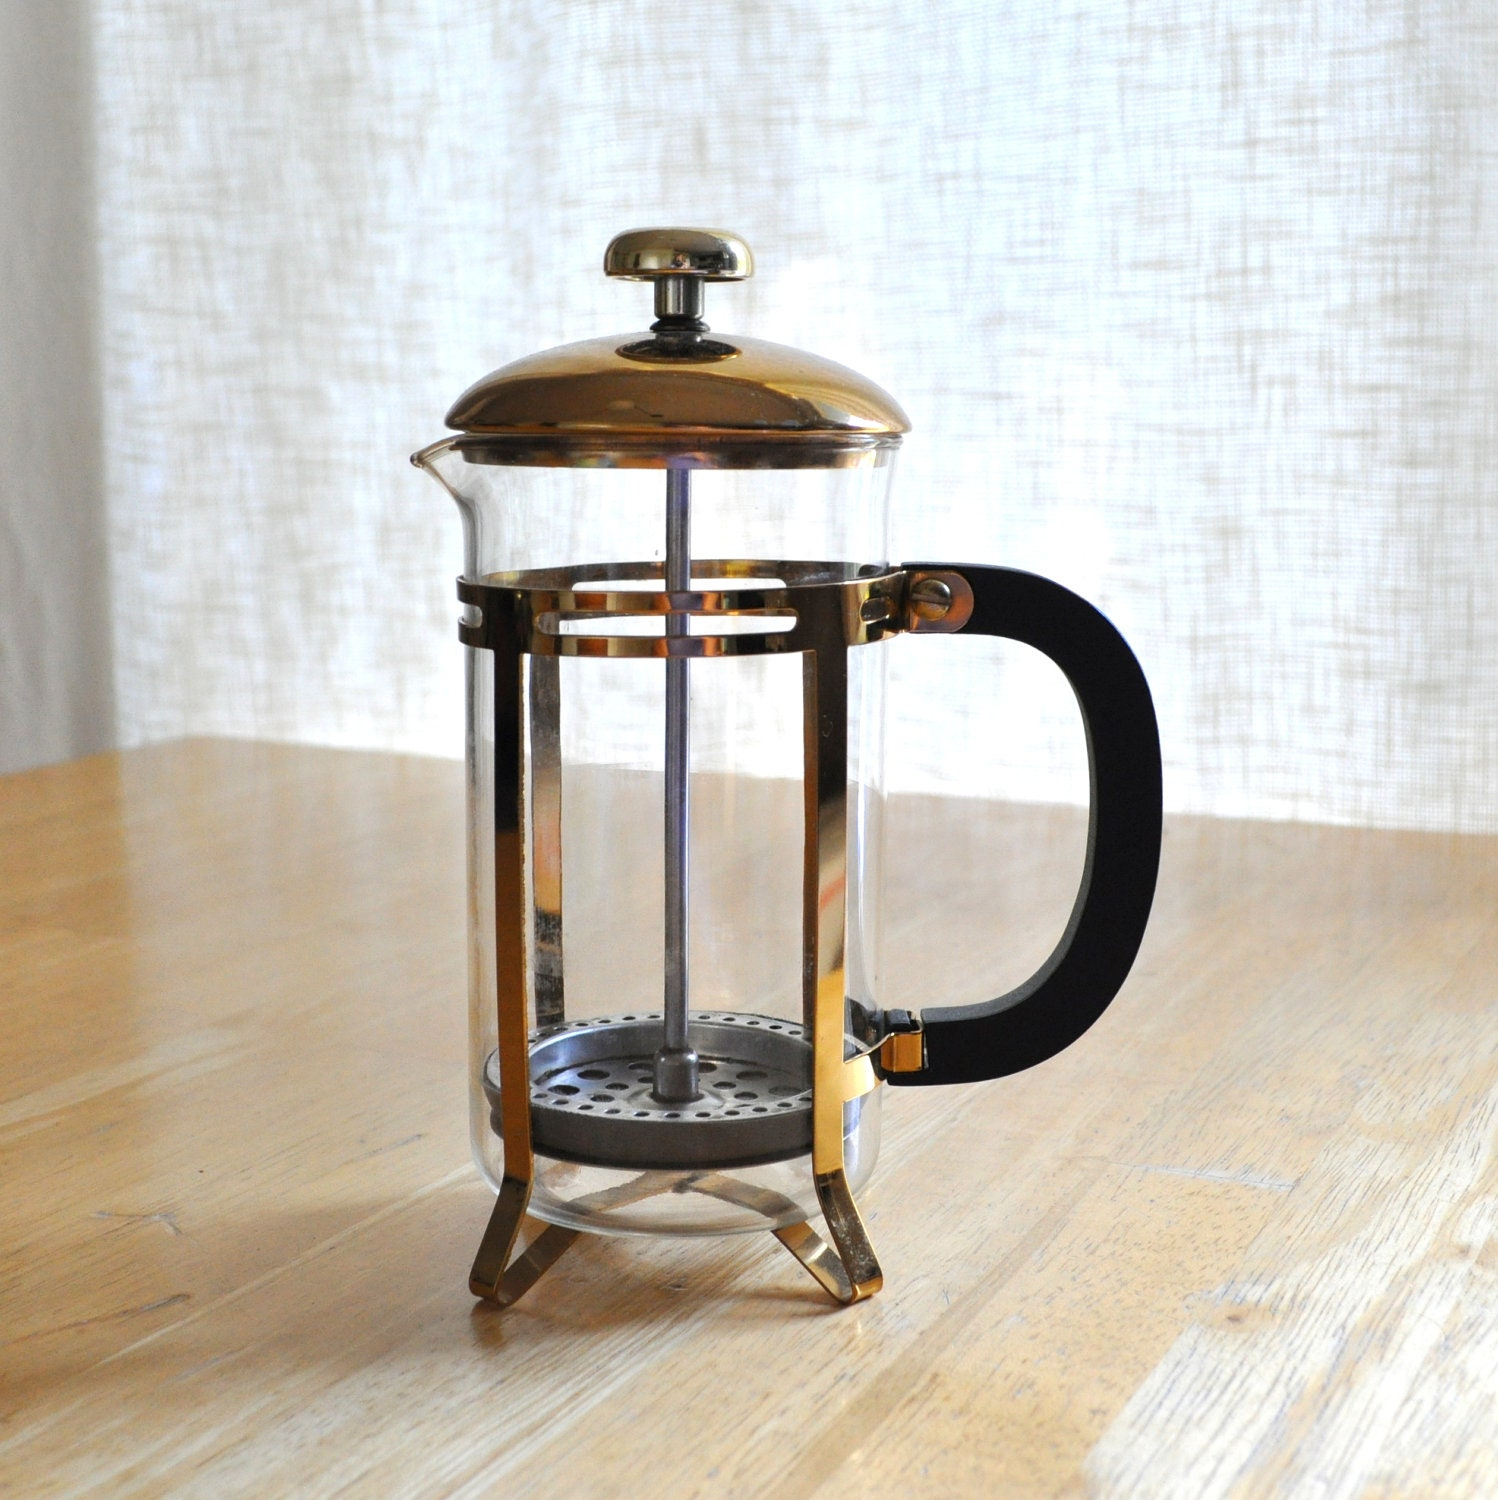 vintage french press coffee maker with original brochure. Black Bedroom Furniture Sets. Home Design Ideas